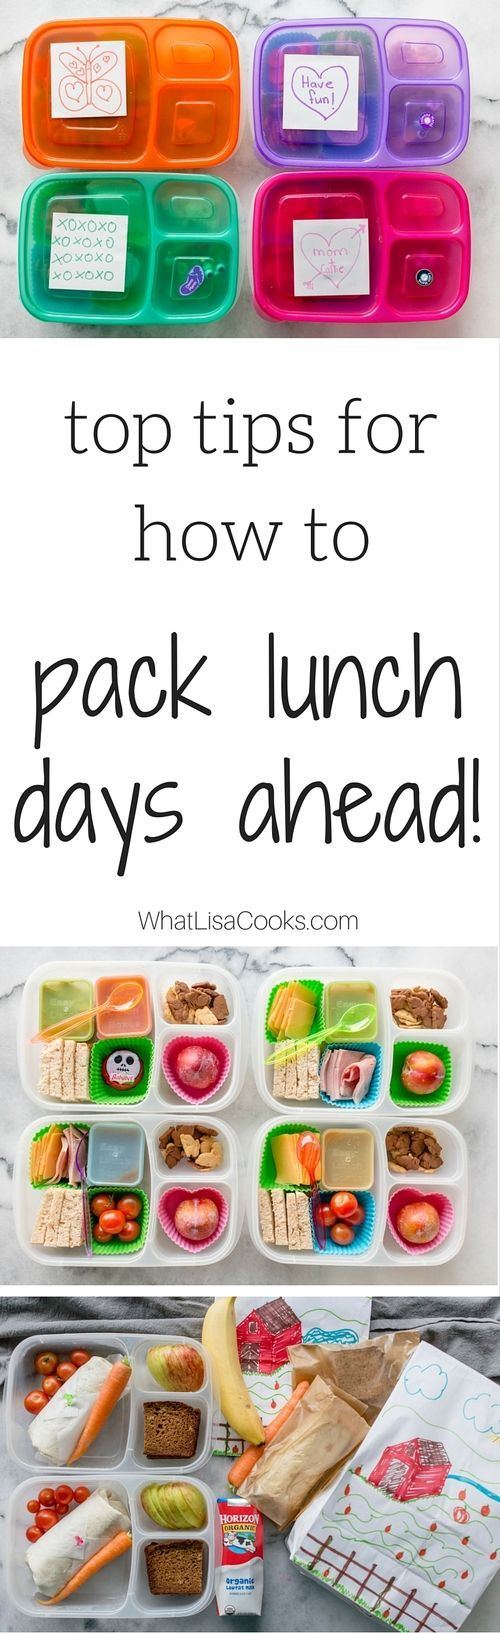 With these great tips and tricks, you can pack school lunch days in advance and save yourself tons of time!